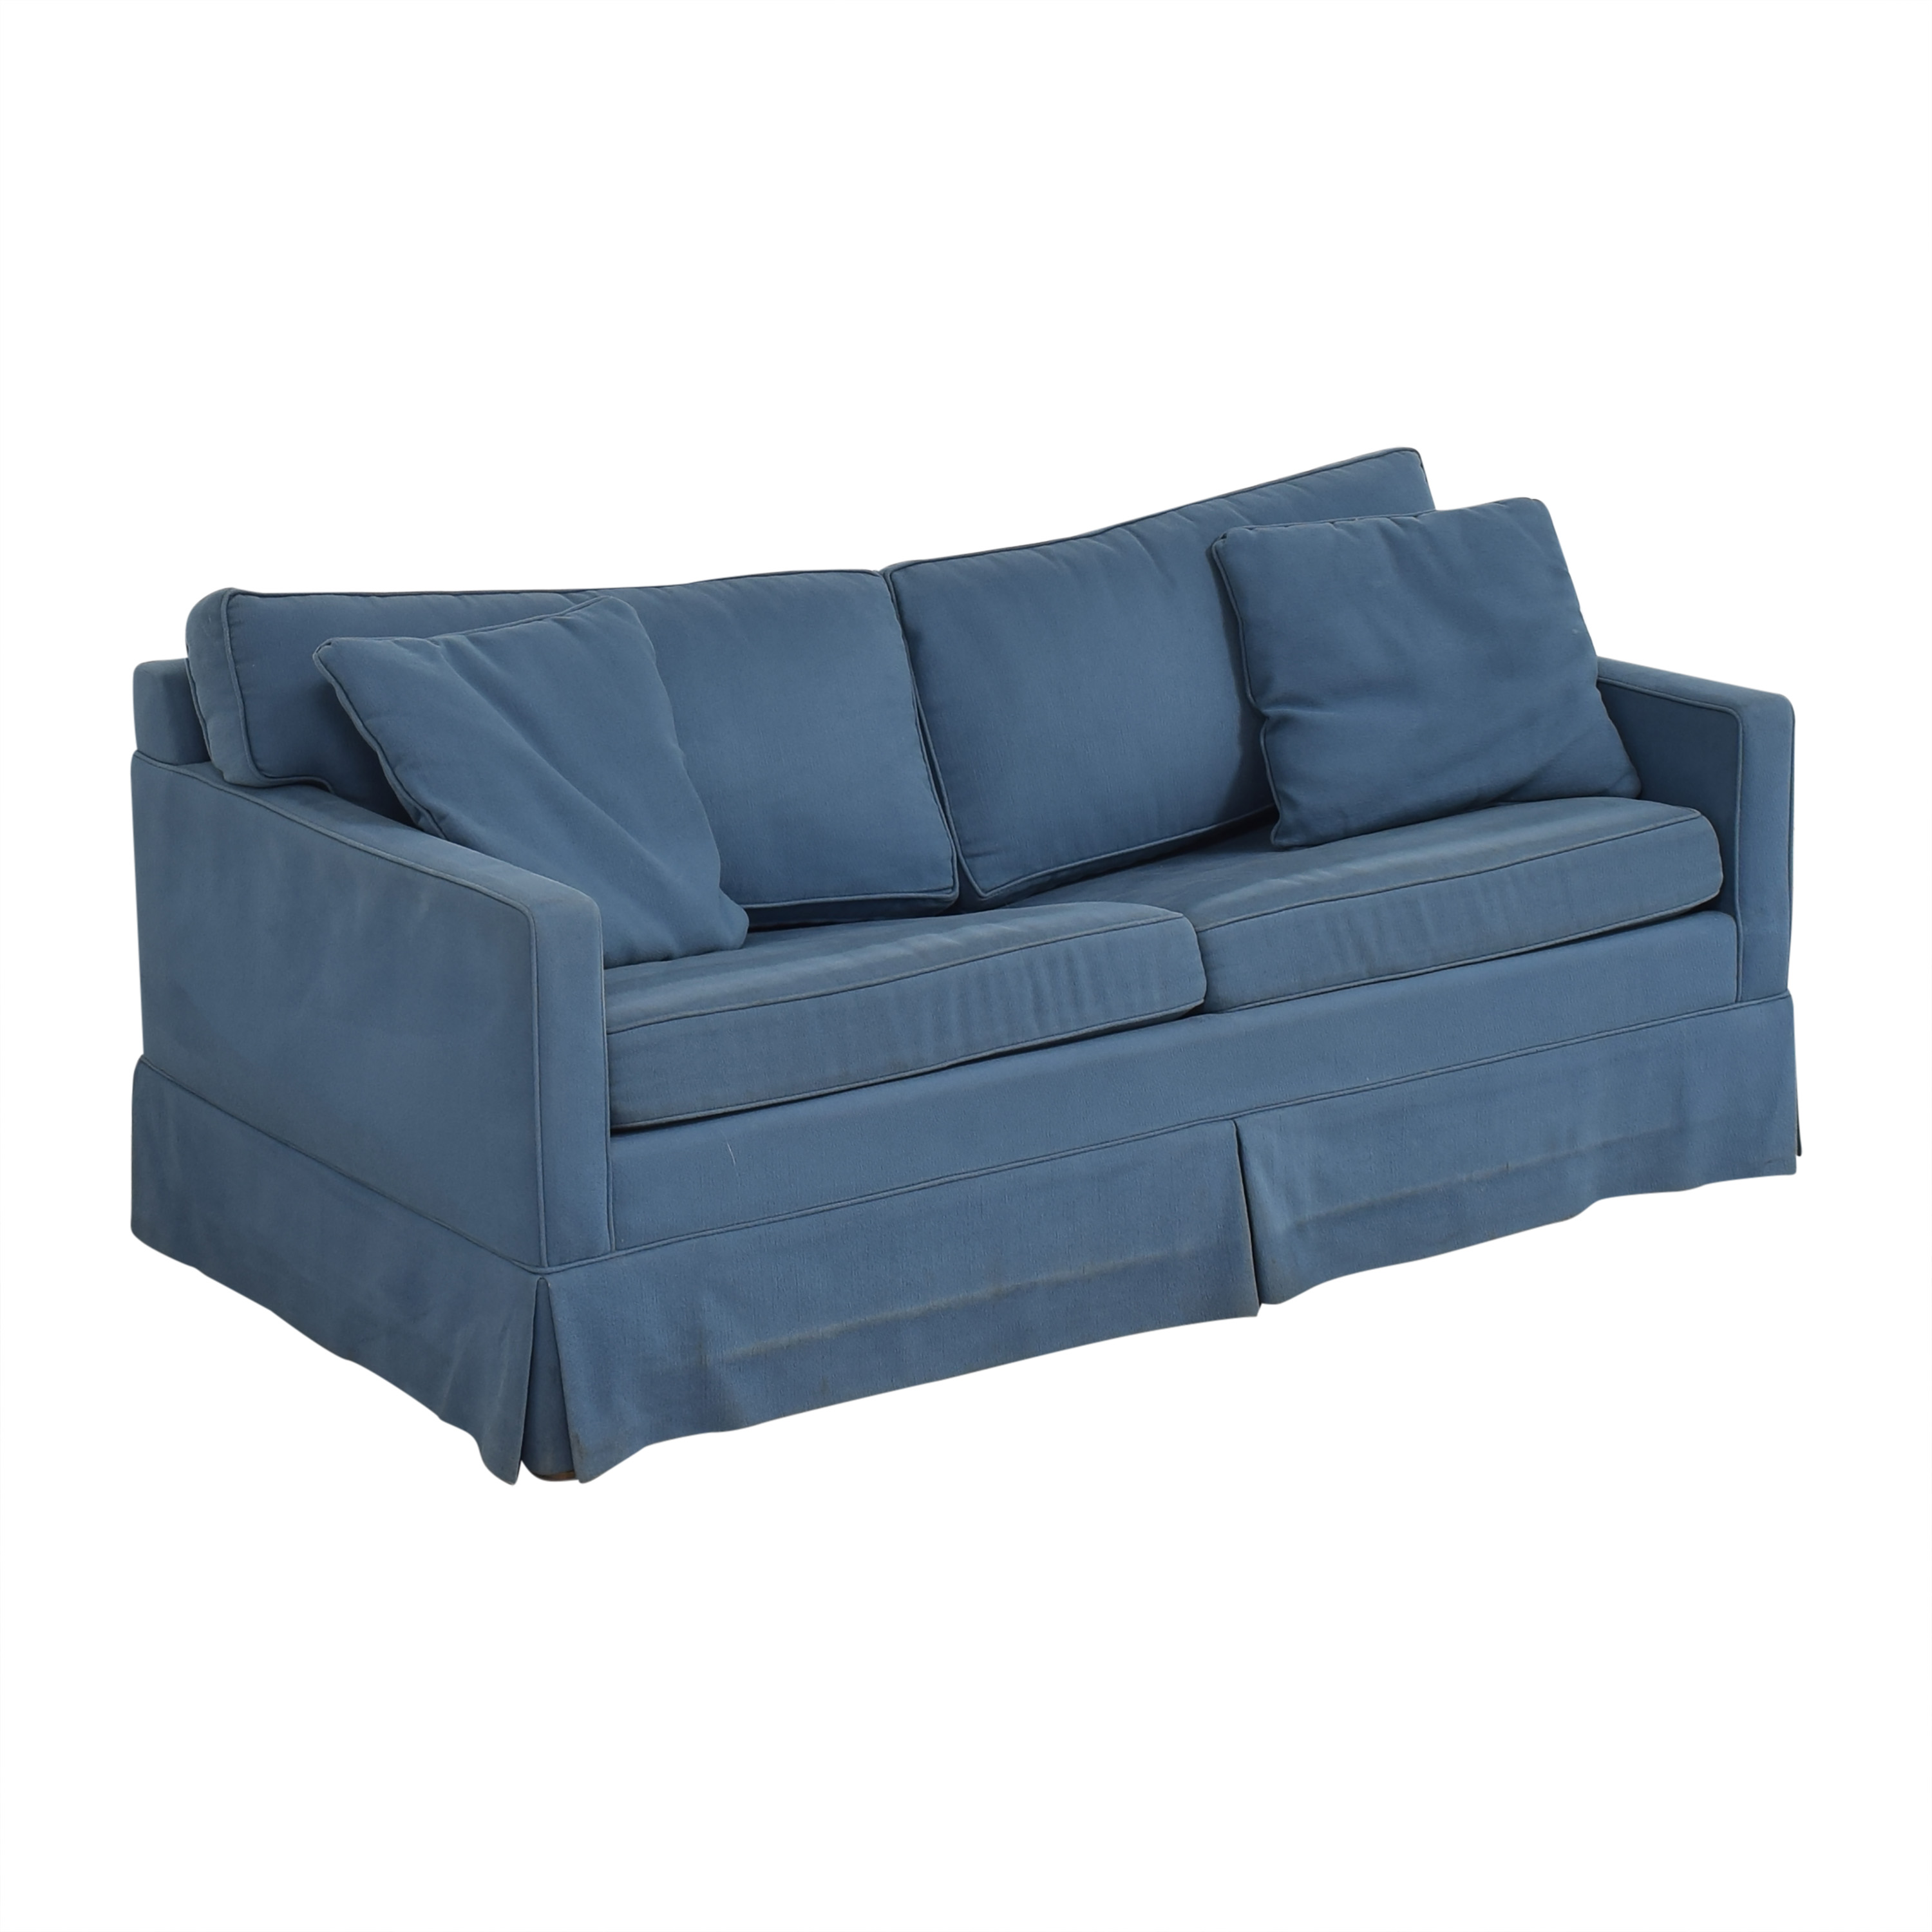 Carlyle Carlyle Two Cushion Skirted Sleeper Sofa second hand